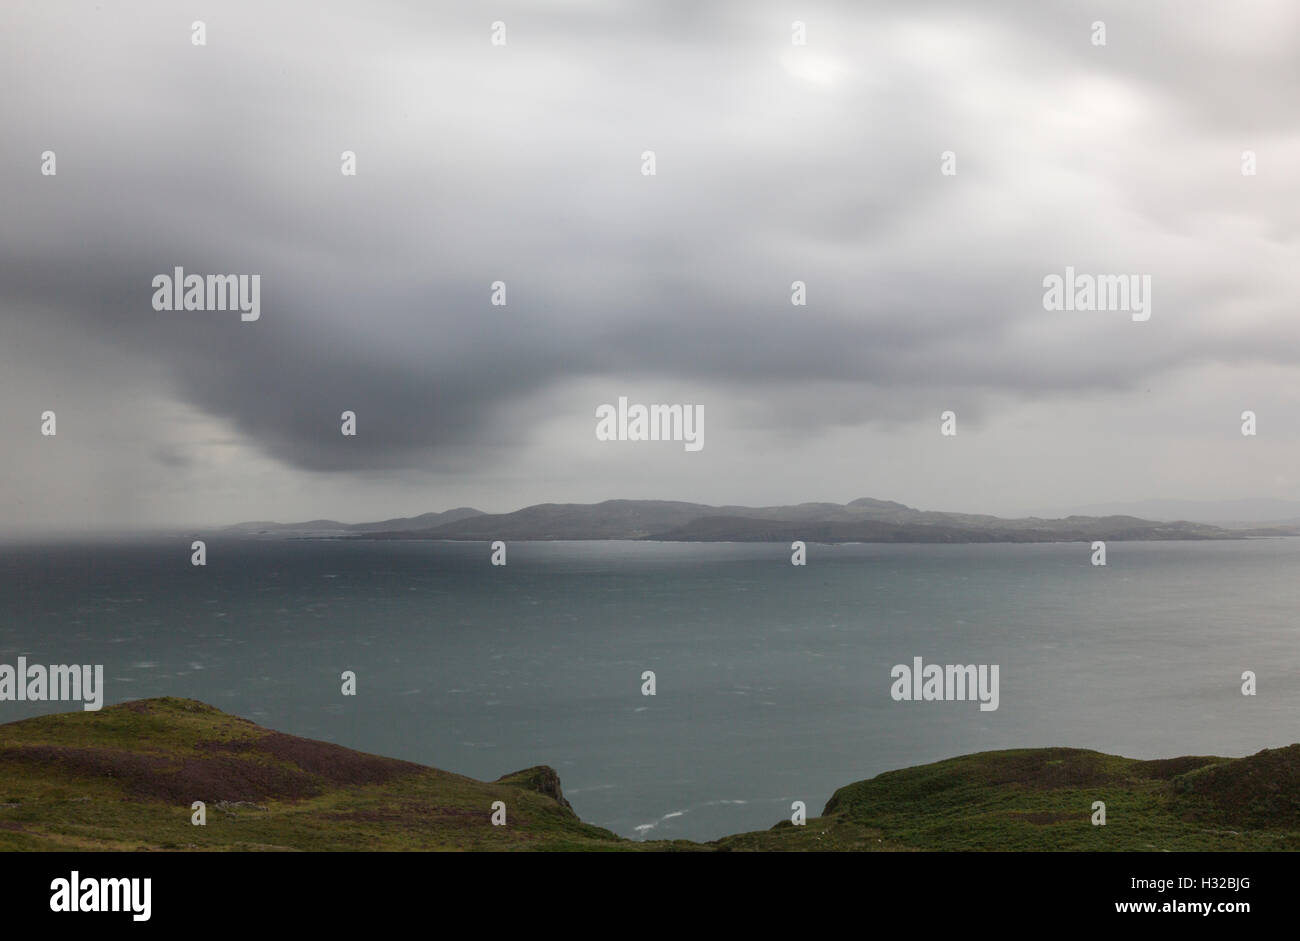 Dunfanaghy Bay from Horn Head, County Donegal, Ireland - Stock Image